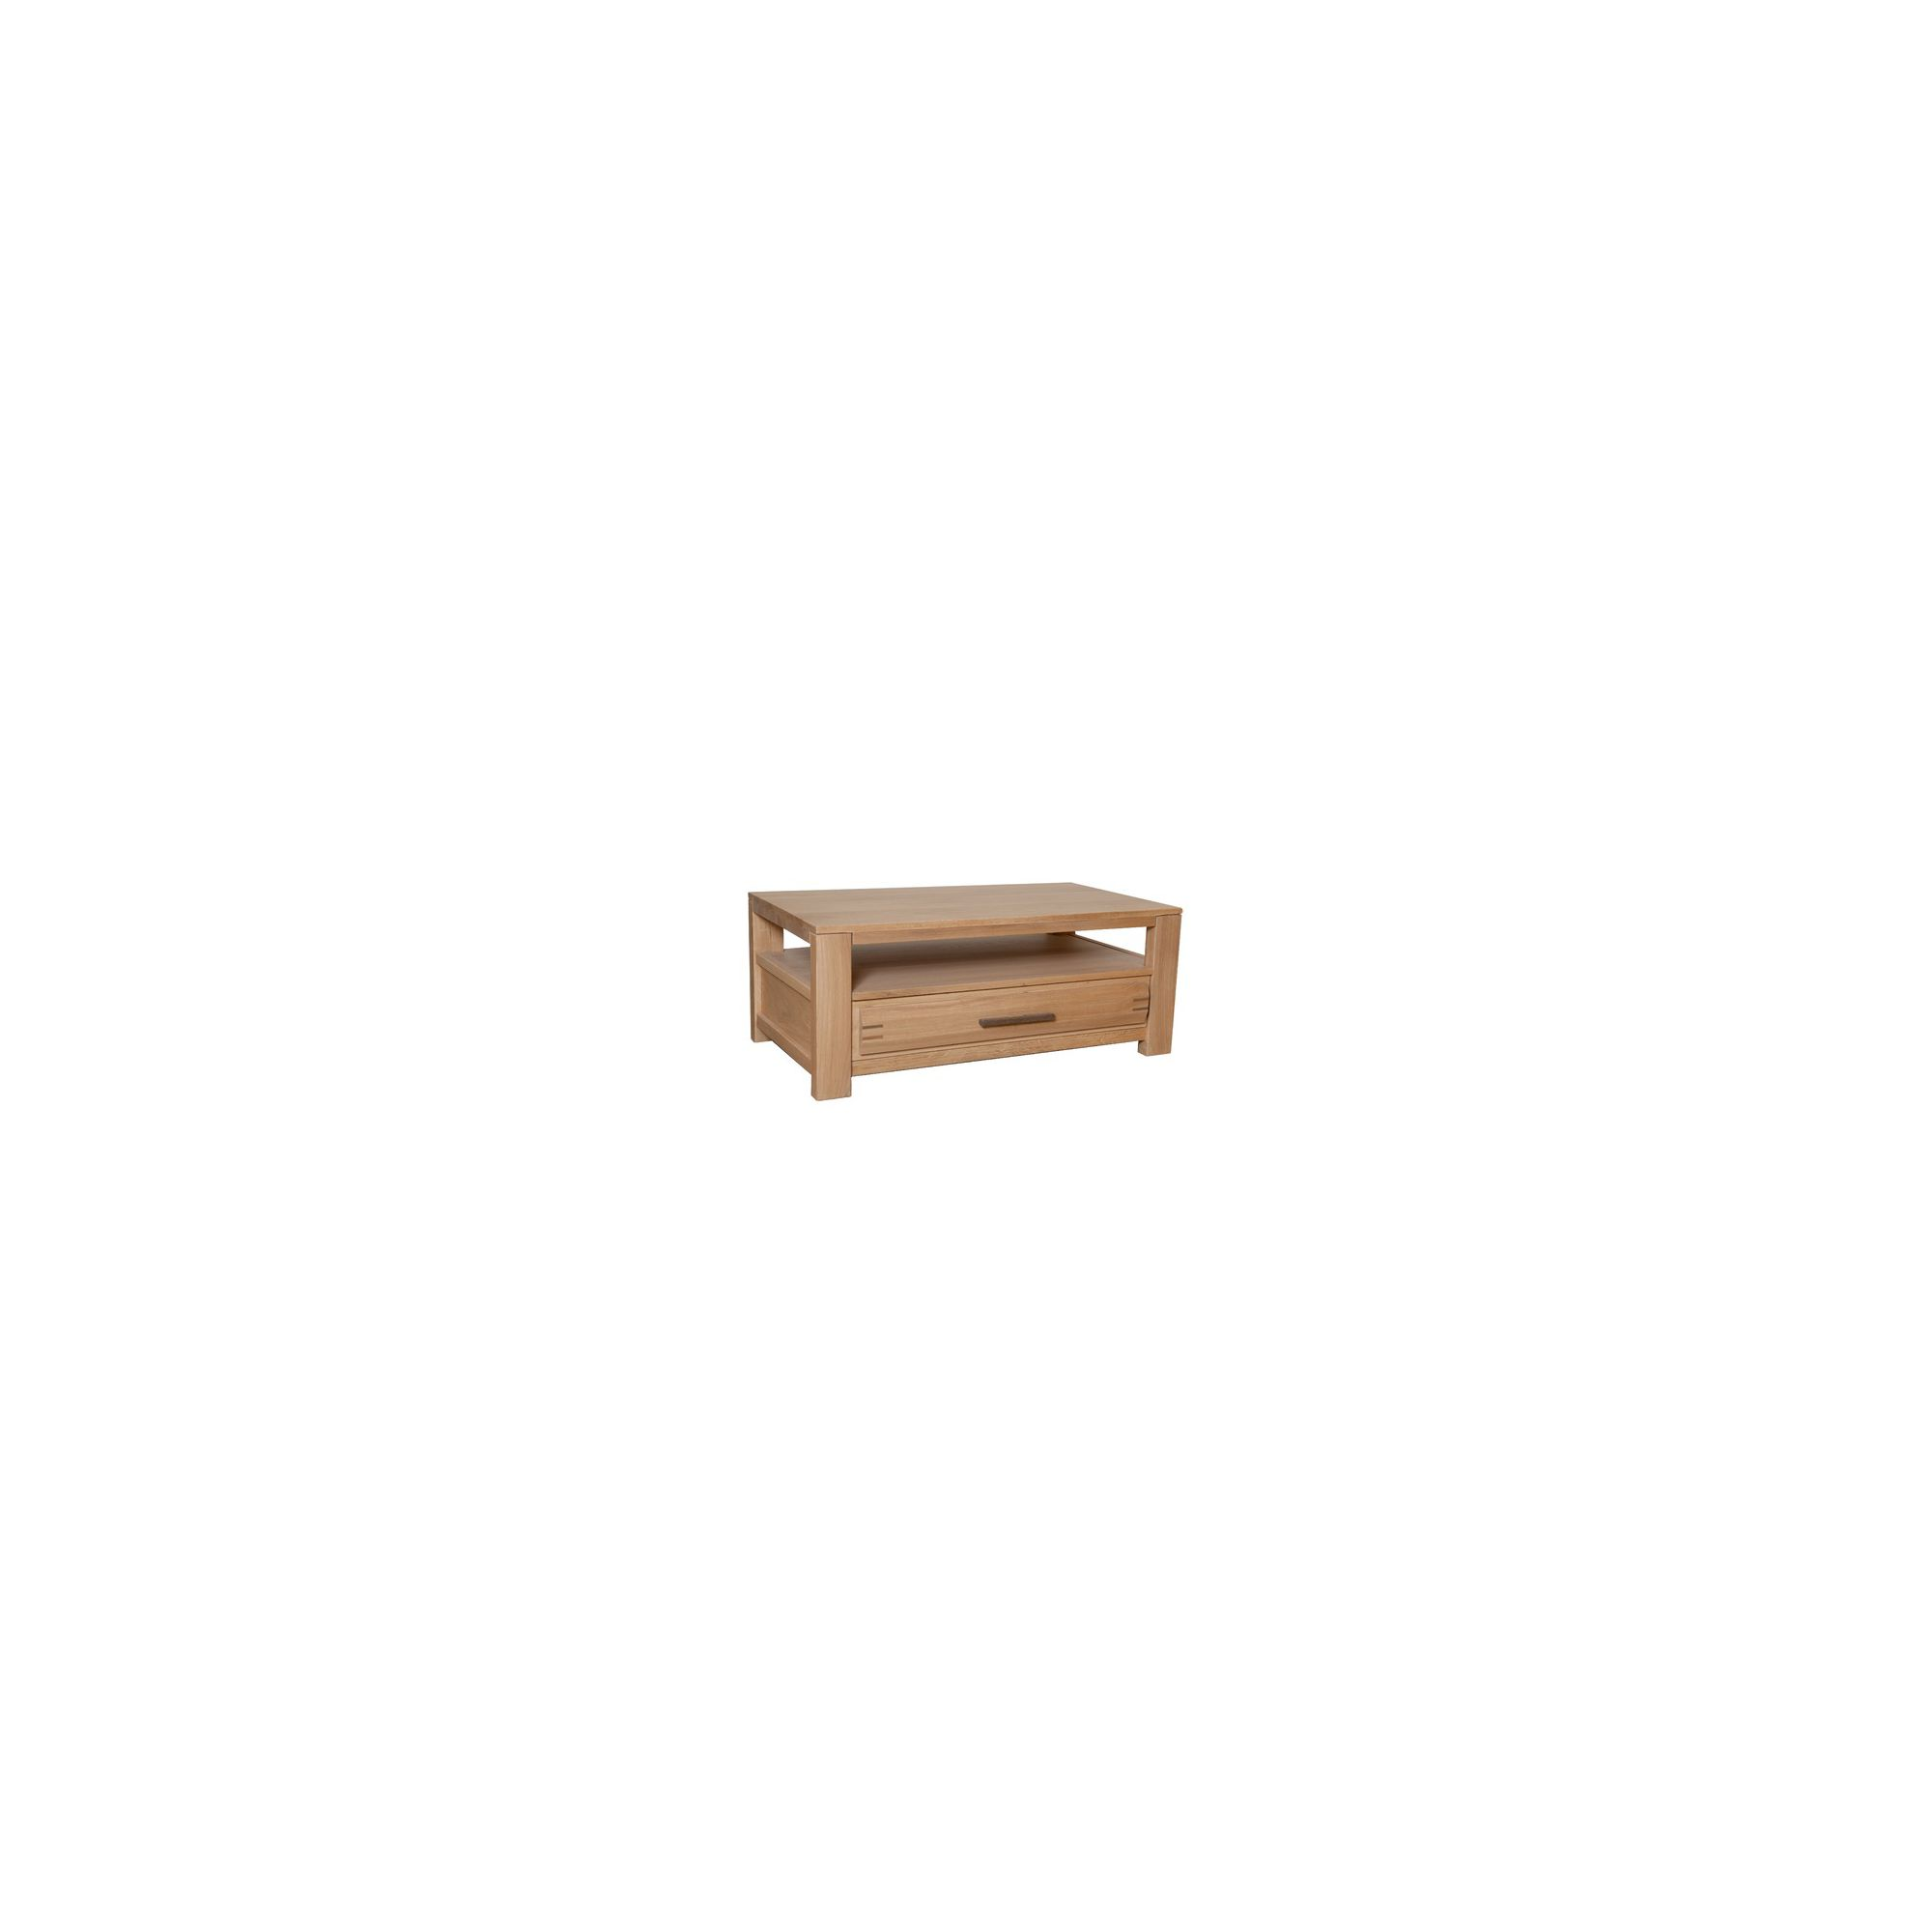 Sherry Designs Newbury Dining Oak Coffee Table at Tesco Direct